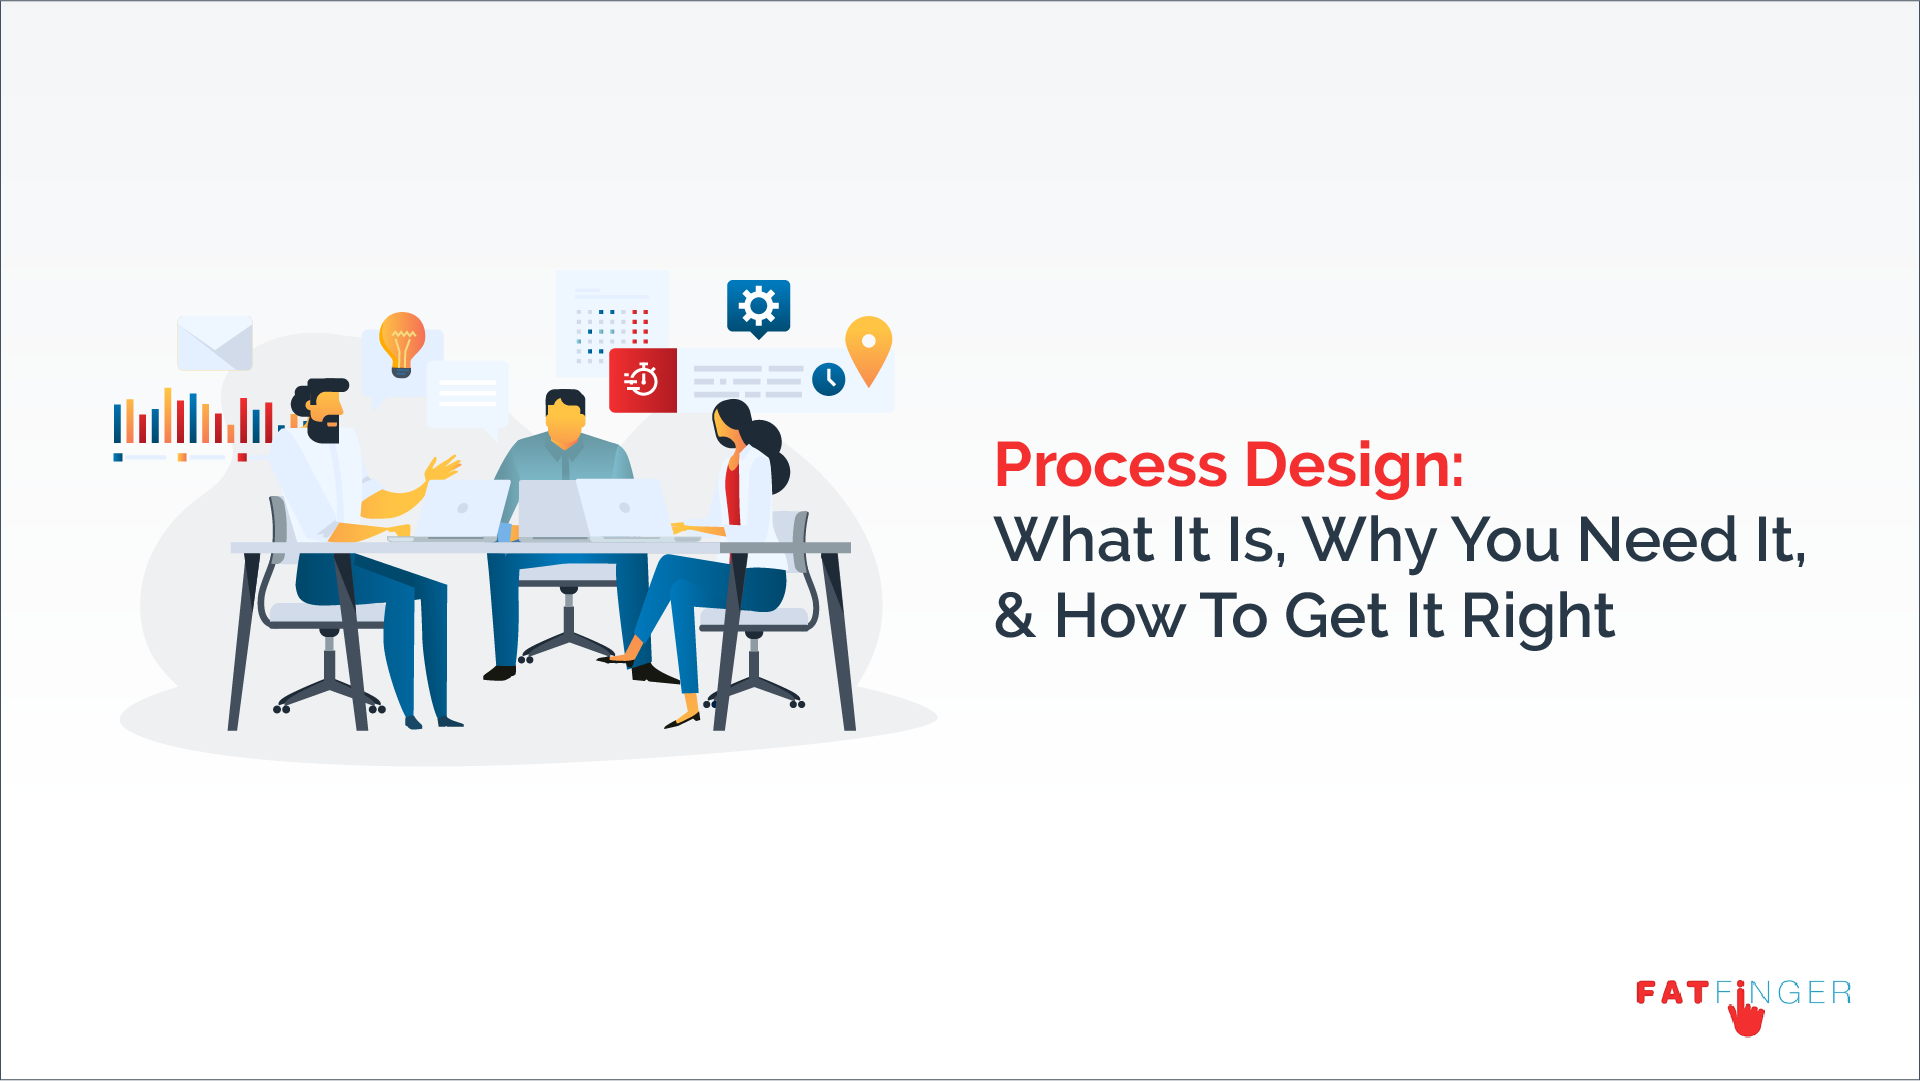 What is Process Design